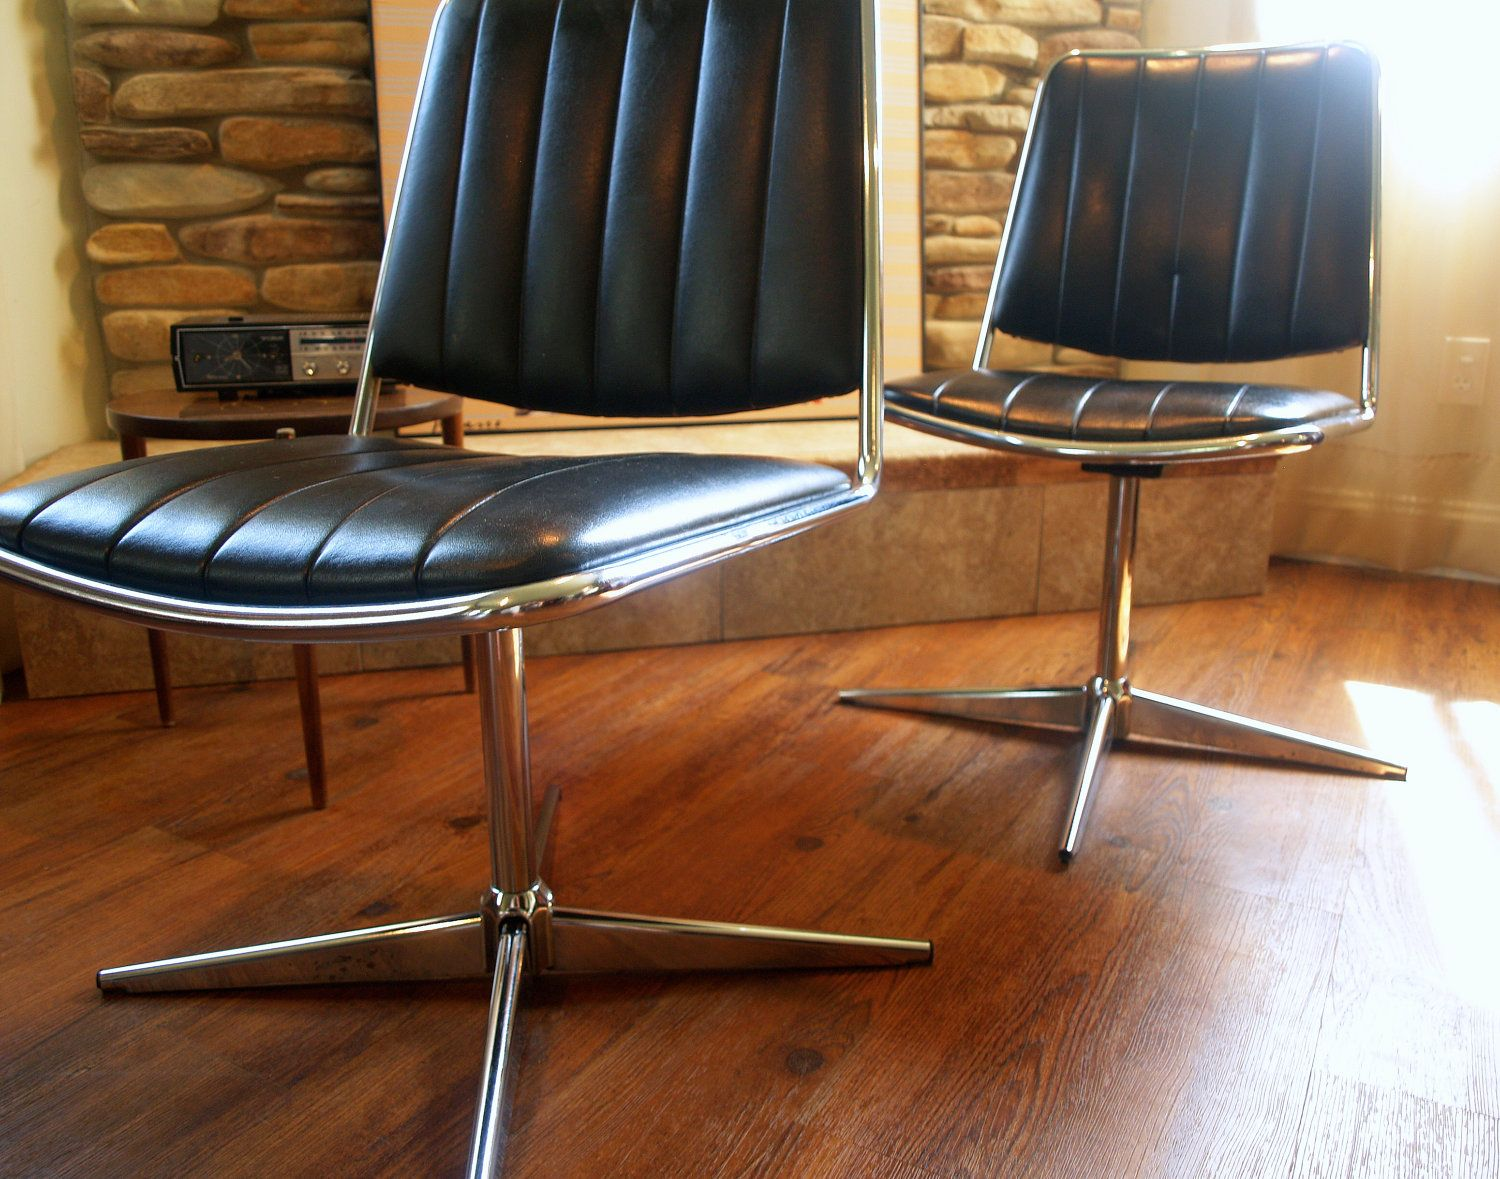 black and chrome furniture. 1967 Vintage Mcm Black Is The New Chromcraft Chair Mod Mid Century Modern Furniture Chrome Metal Faux Leather Propeller Swivel Base And _